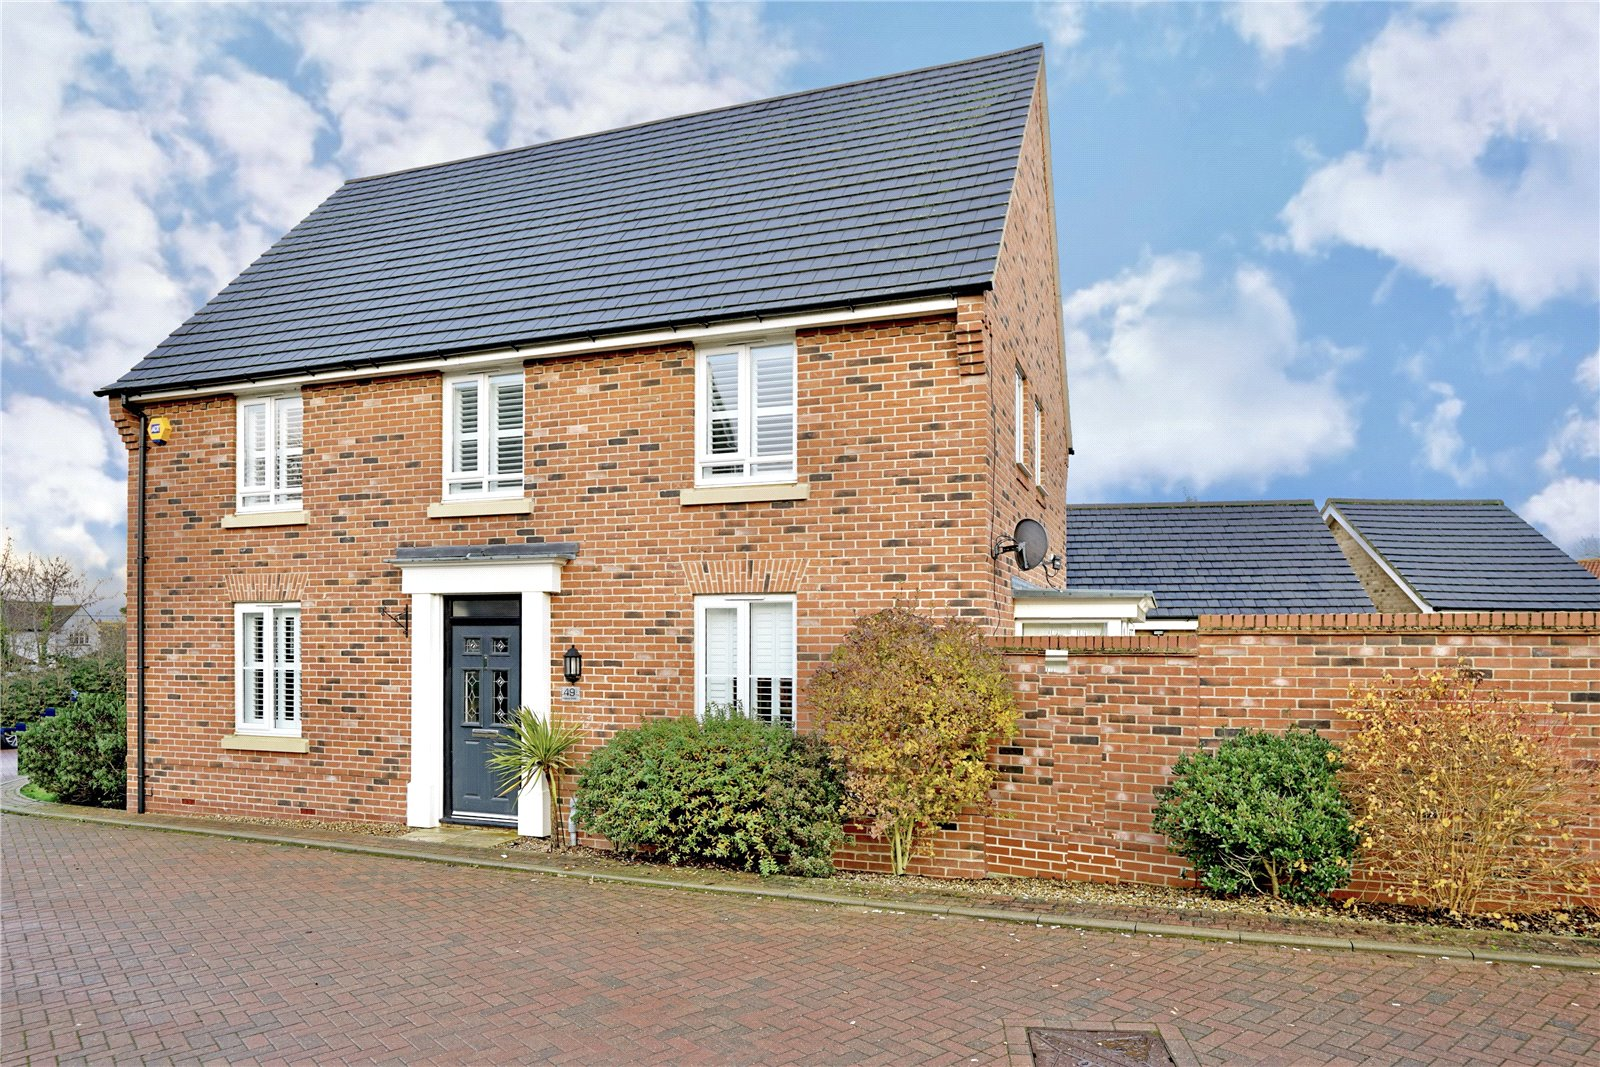 4 bed house for sale in St. Ives, PE27 6TD 0